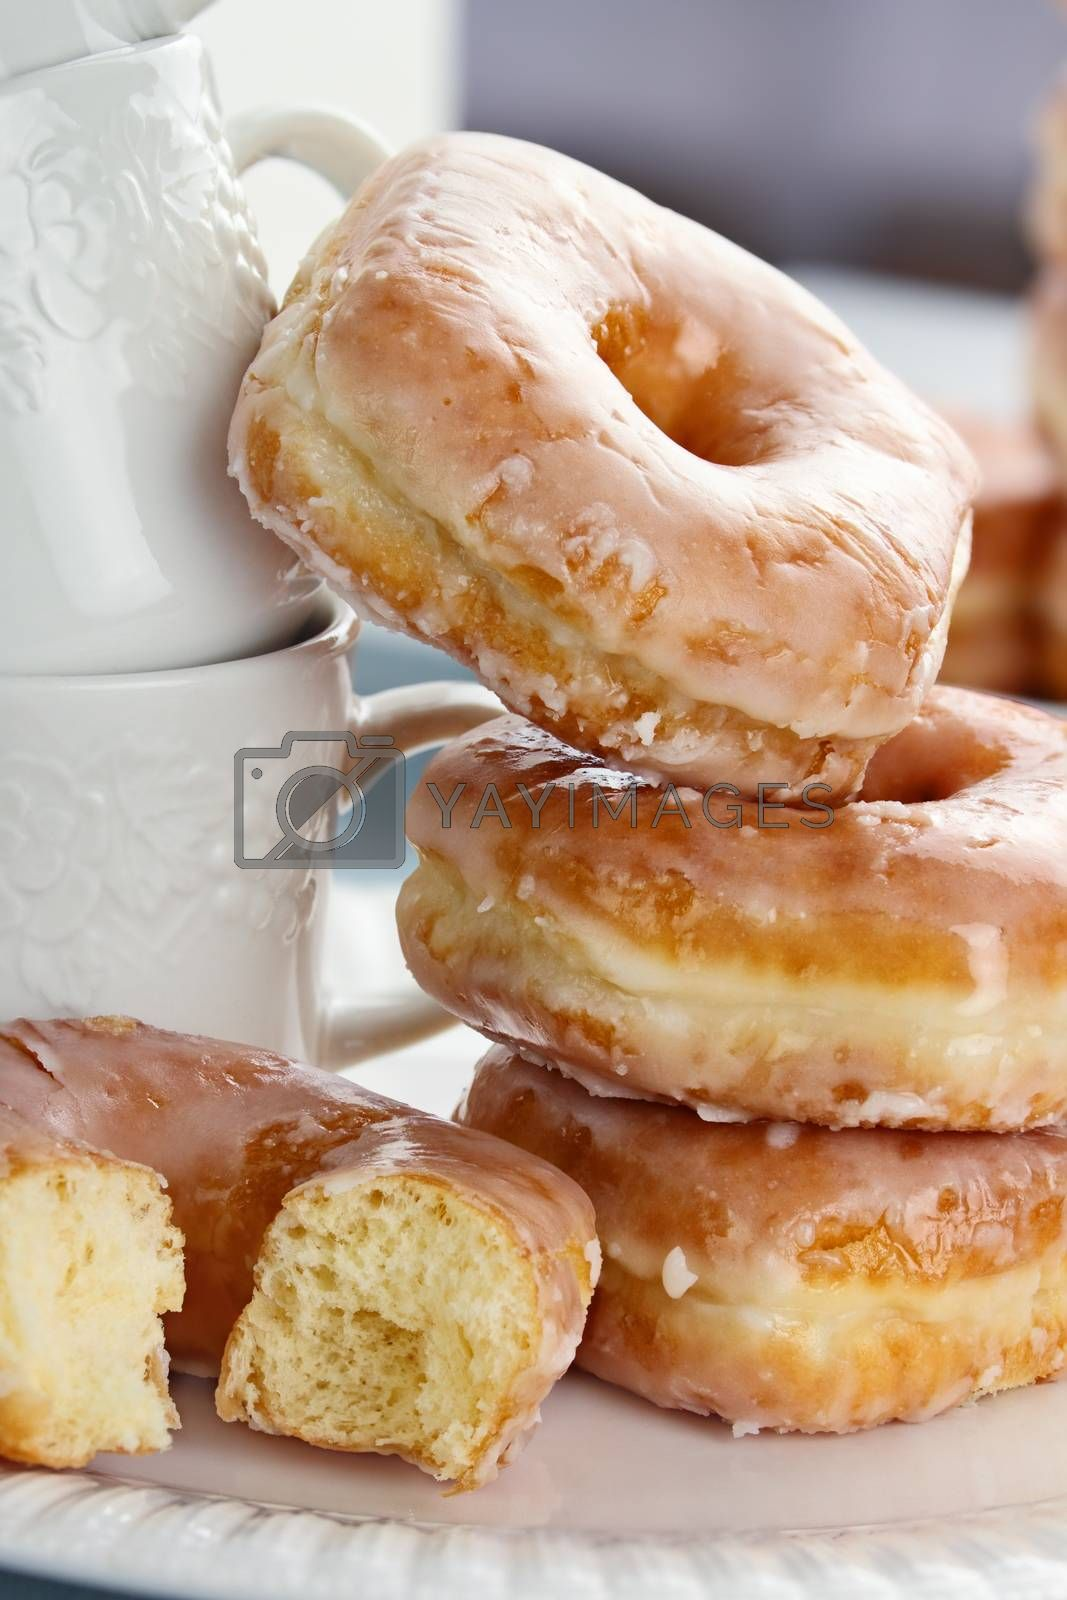 Royalty free image of Stacked Donuts and Cups by StephanieFrey